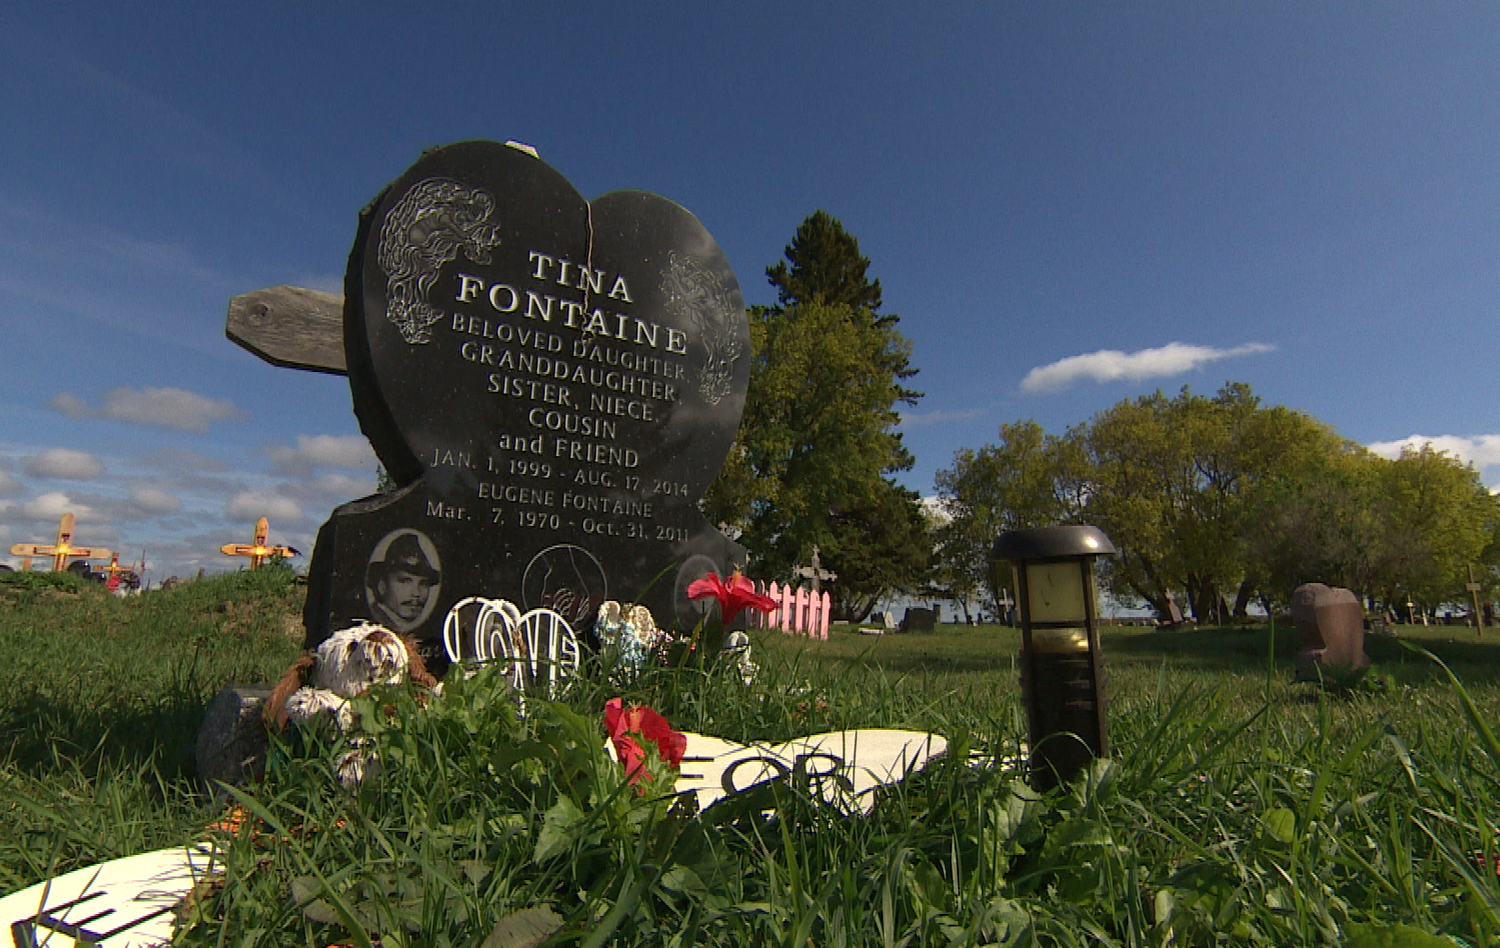 Tina Fontaine's remains lie in the graveyard at Powerview, Man., not far from her father. (Gary Solilak)